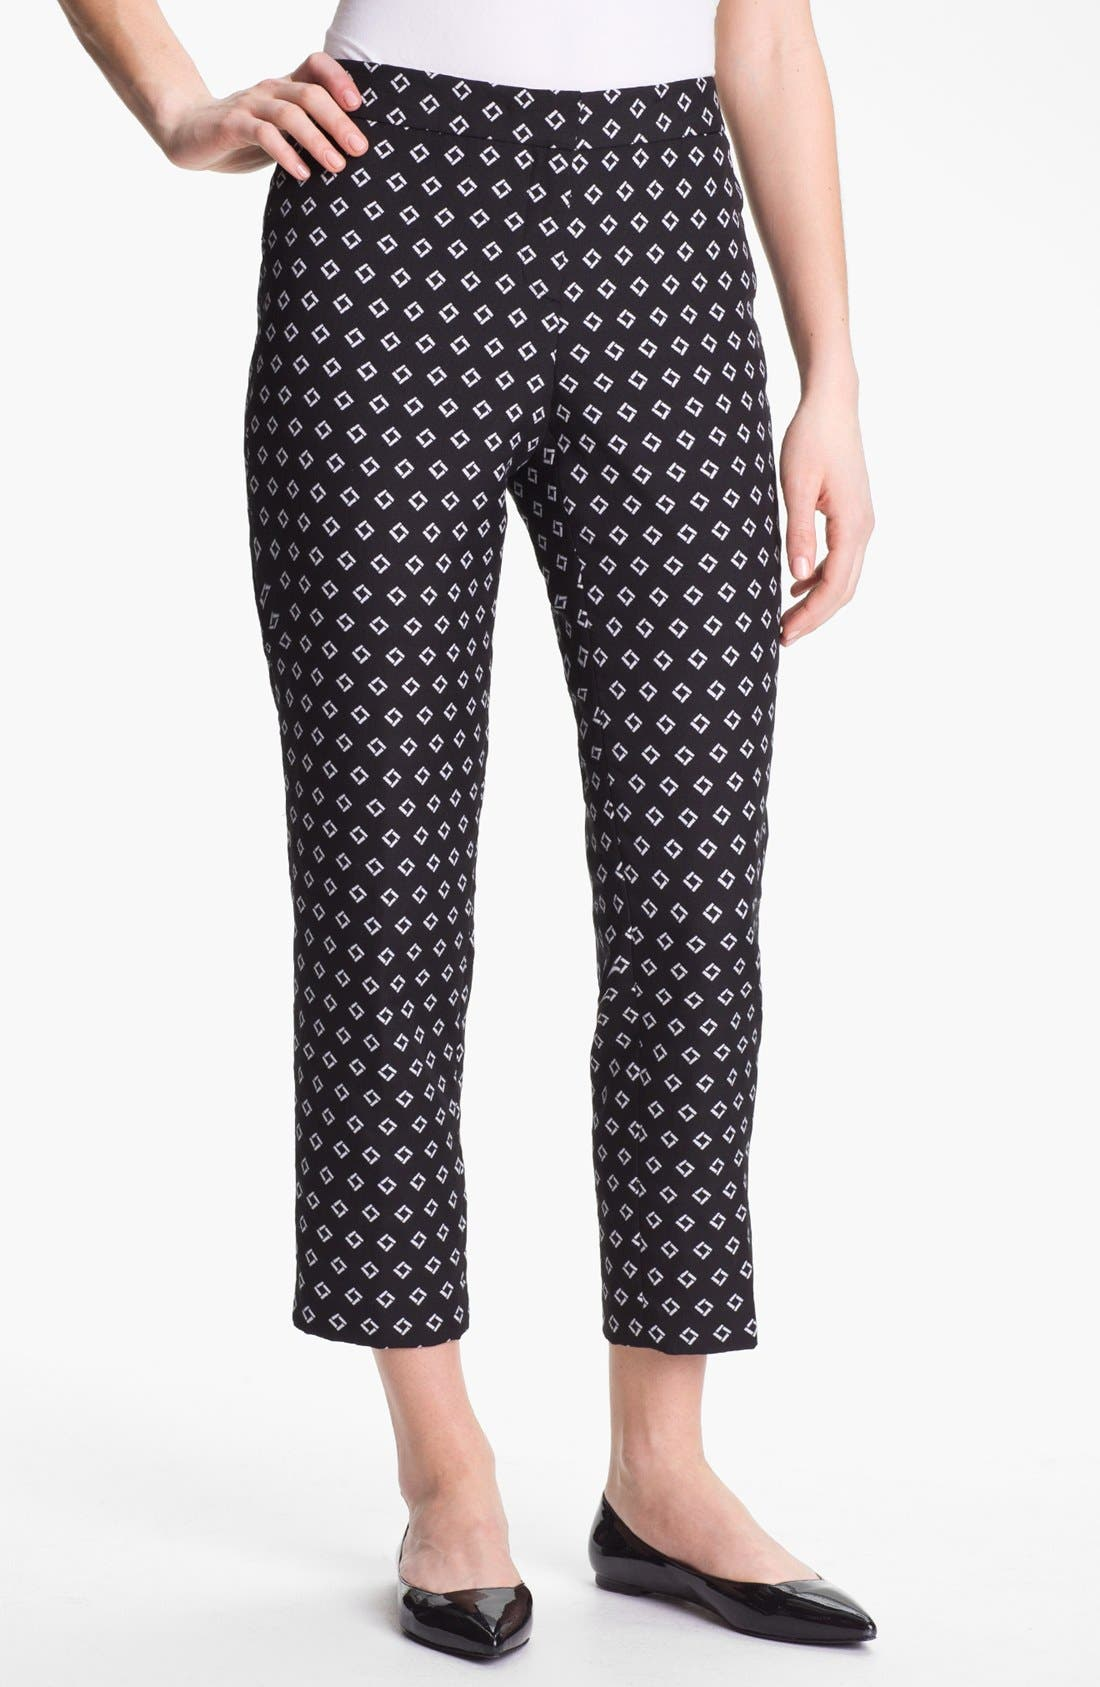 Alternate Image 1 Selected - Vince Camuto Diamond Jacquard Skinny Ankle Pants (Petite)